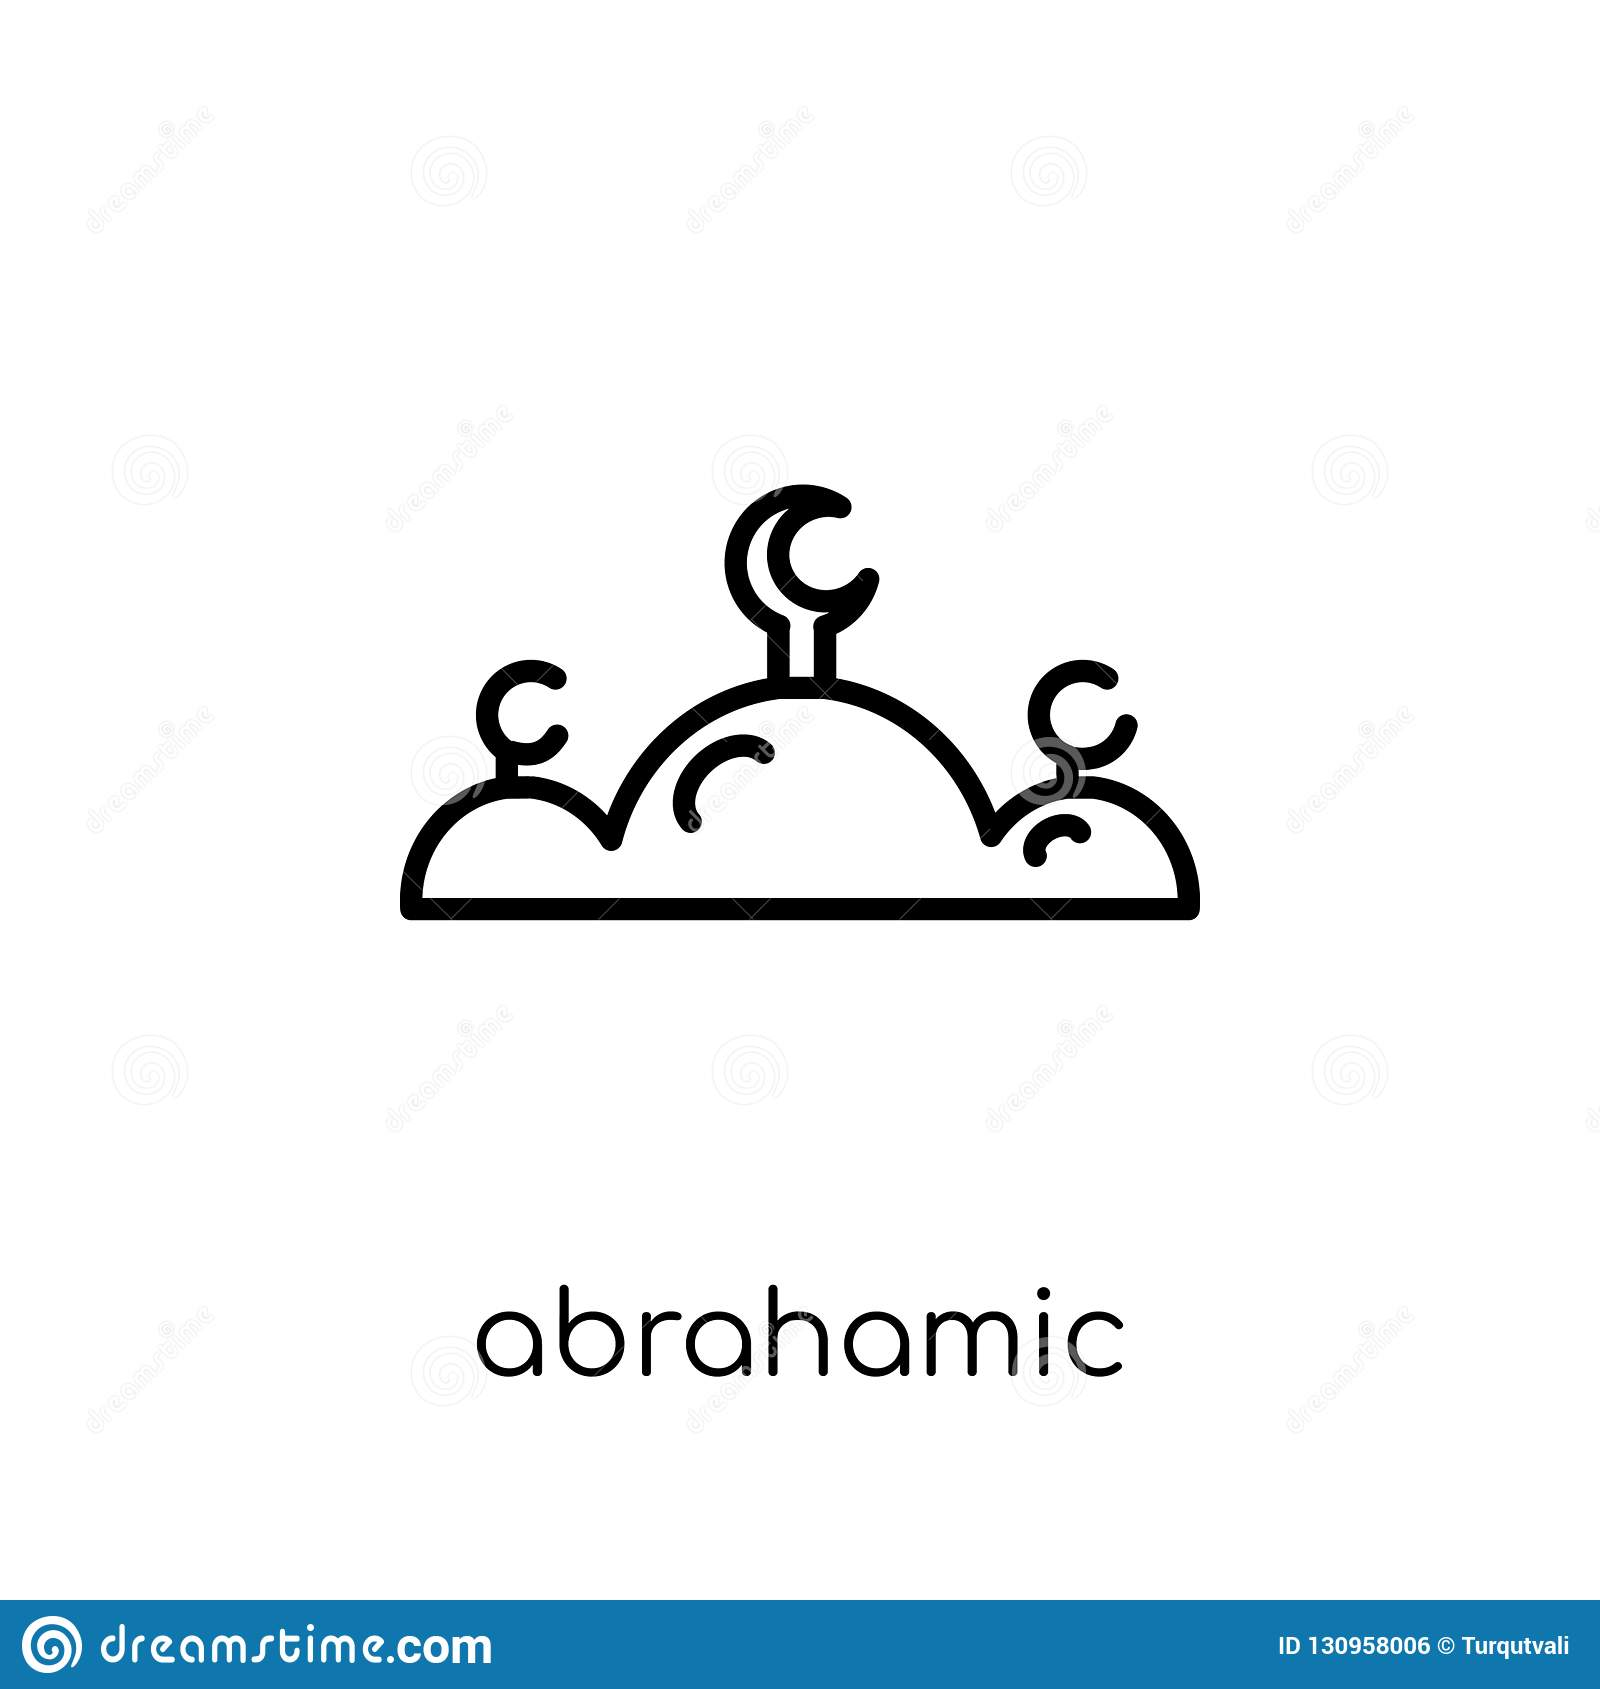 Abrahamic icon. Trendy modern flat linear vector Abrahamic icon